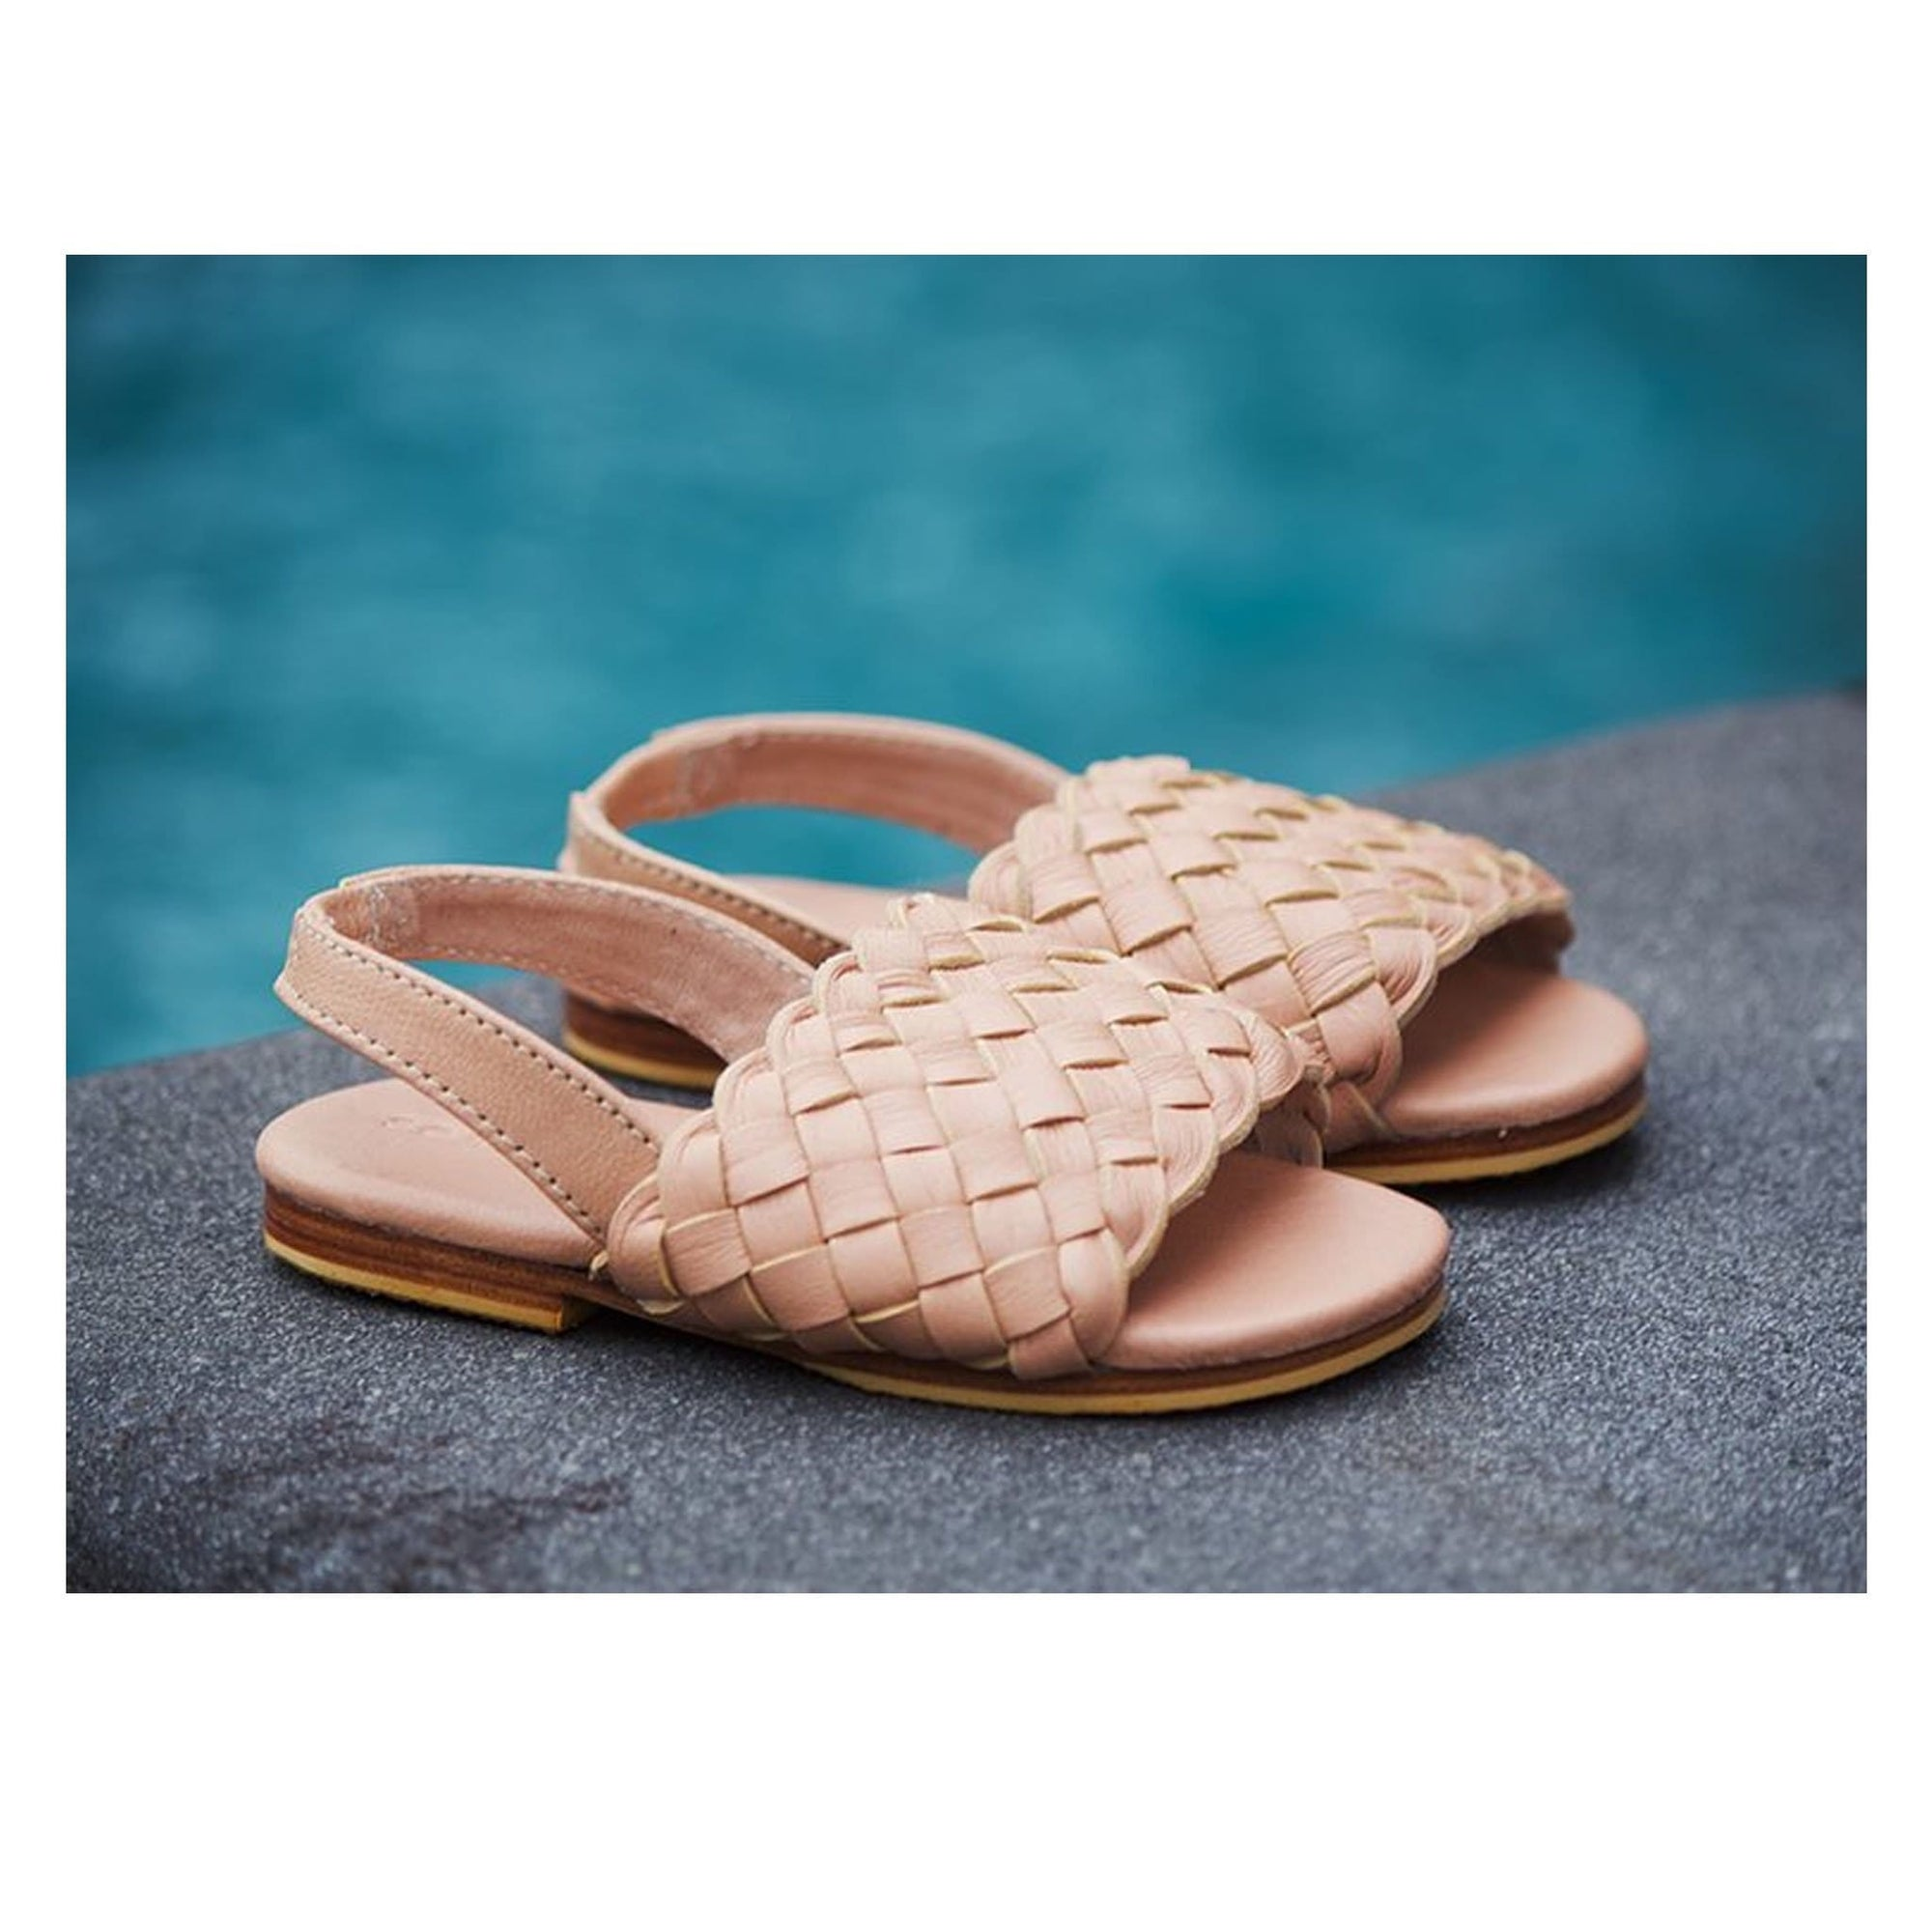 Scandic Gypsy Little Gypsy Sandal Nude